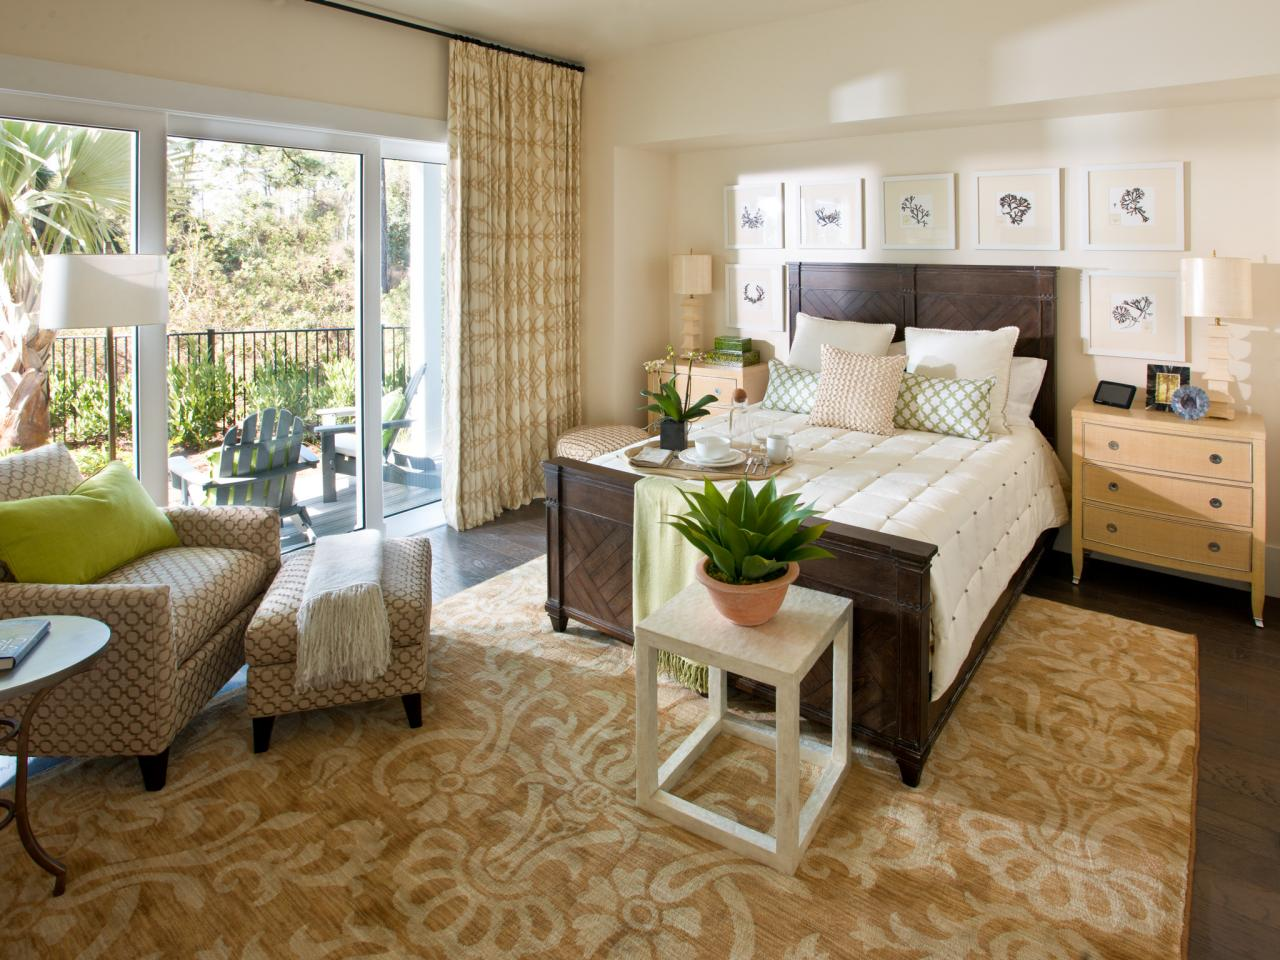 Hgtv smart home 2013 master bedroom pictures hgtv smart Master bedroom retreat design ideas